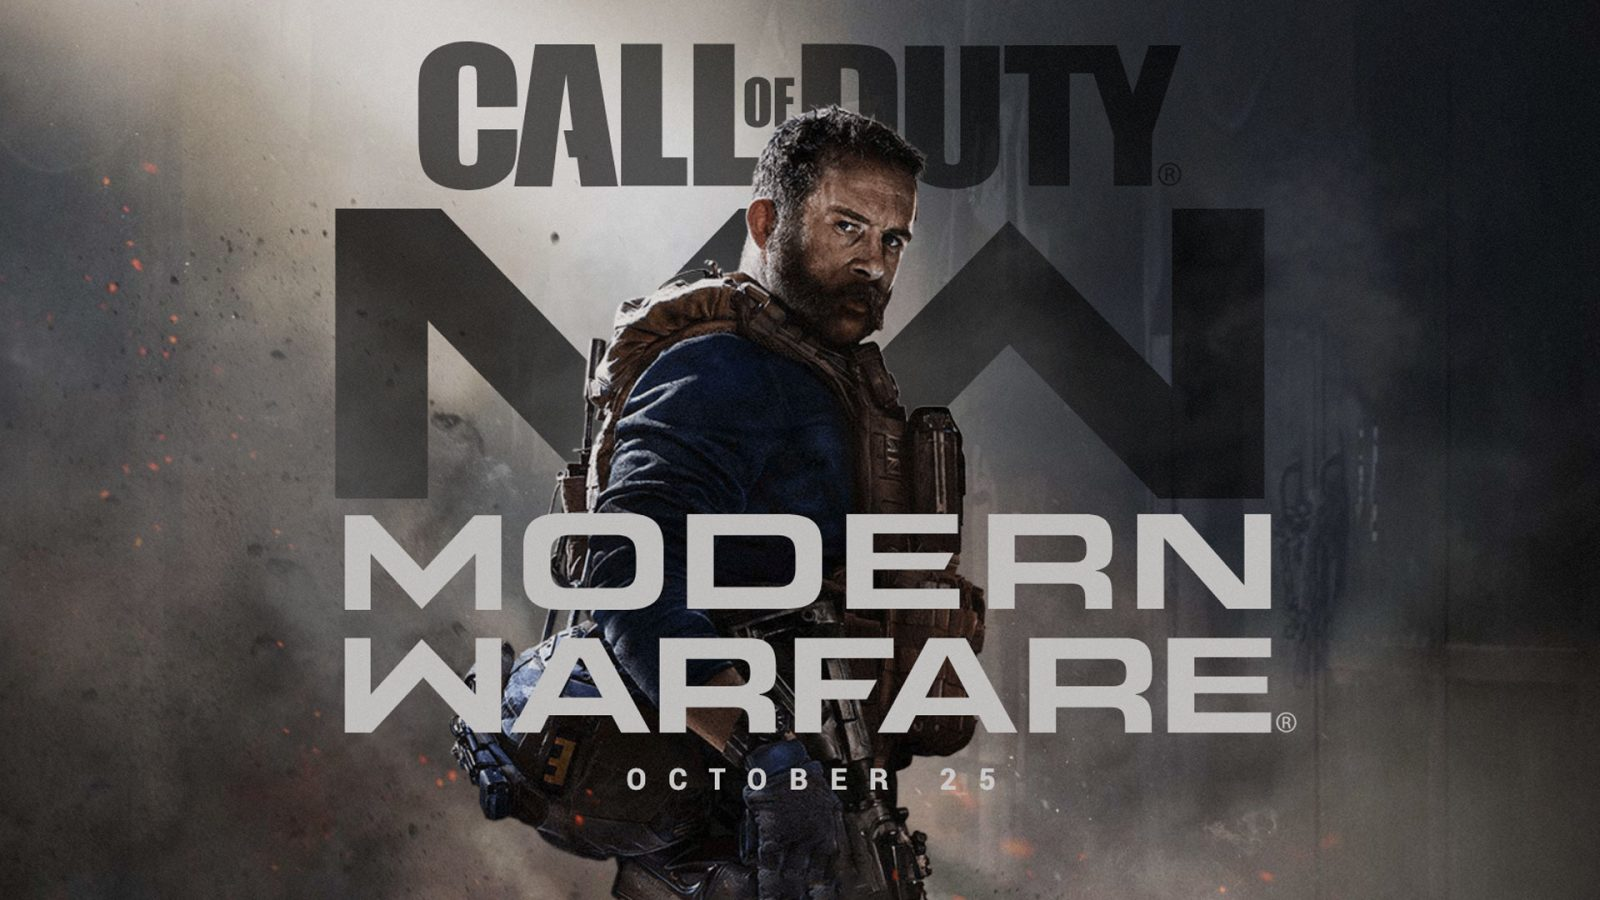 call-of-duty-modern-warfare-holday-season-video-games